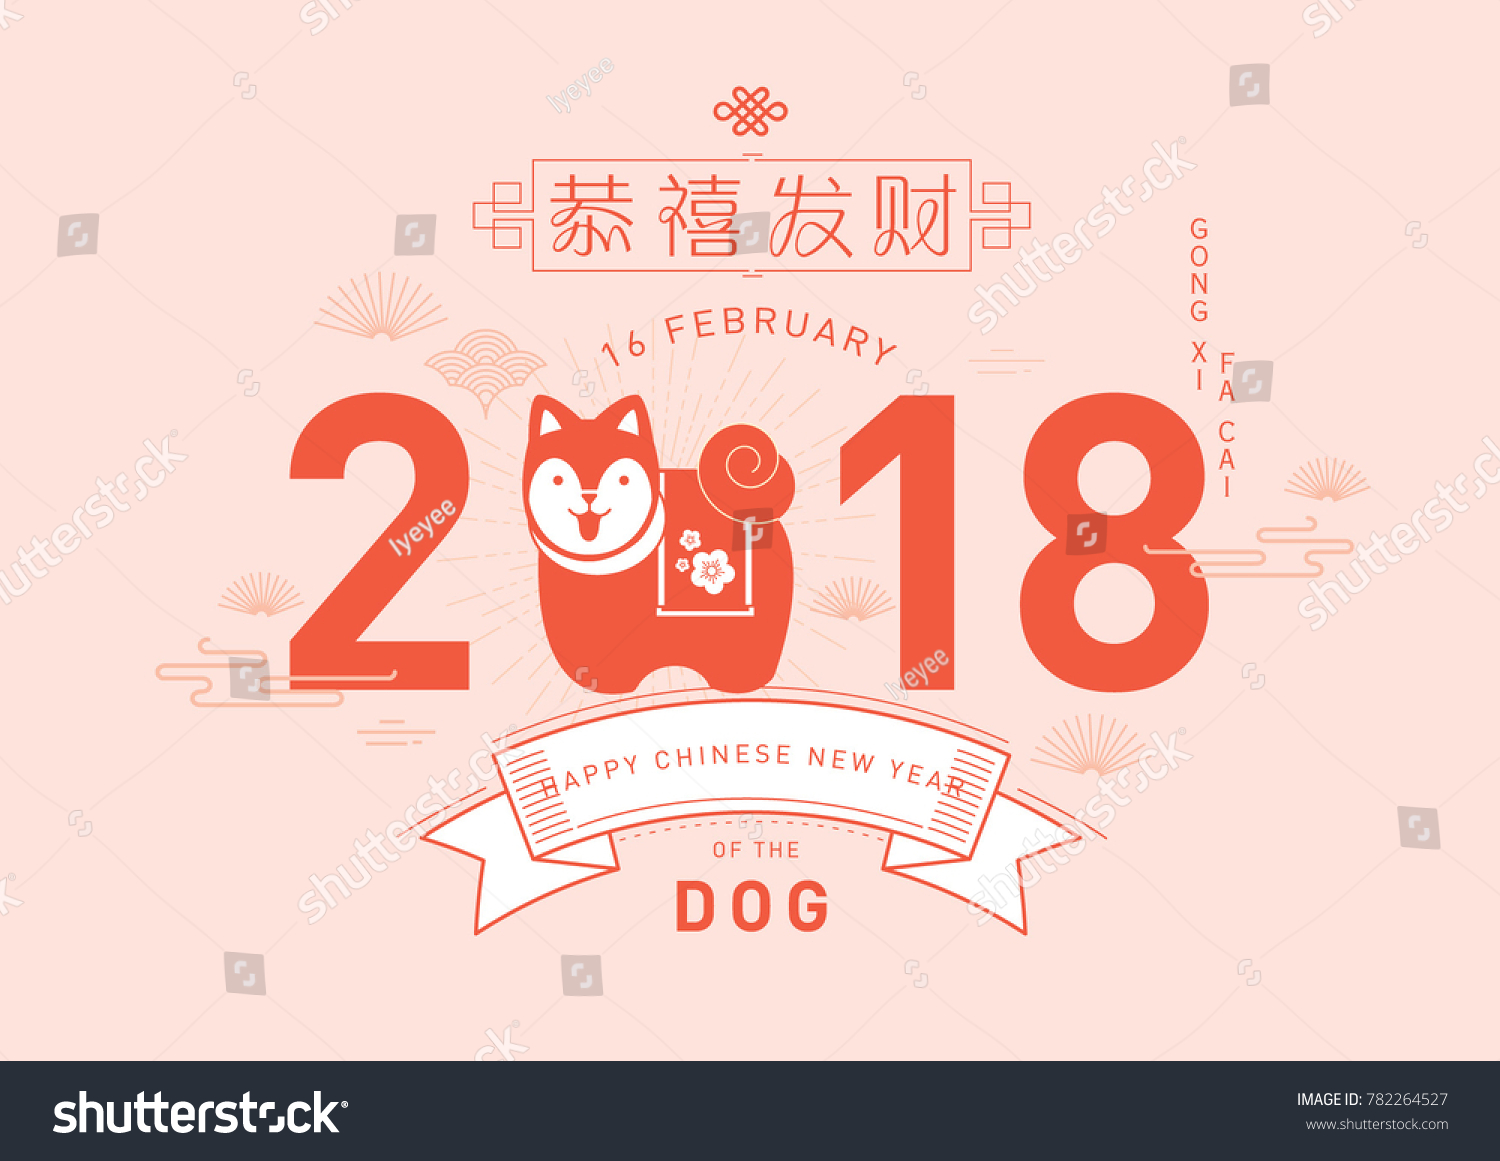 chinese new year of the dog 2018 greetings template vectorillustration with chinese words that